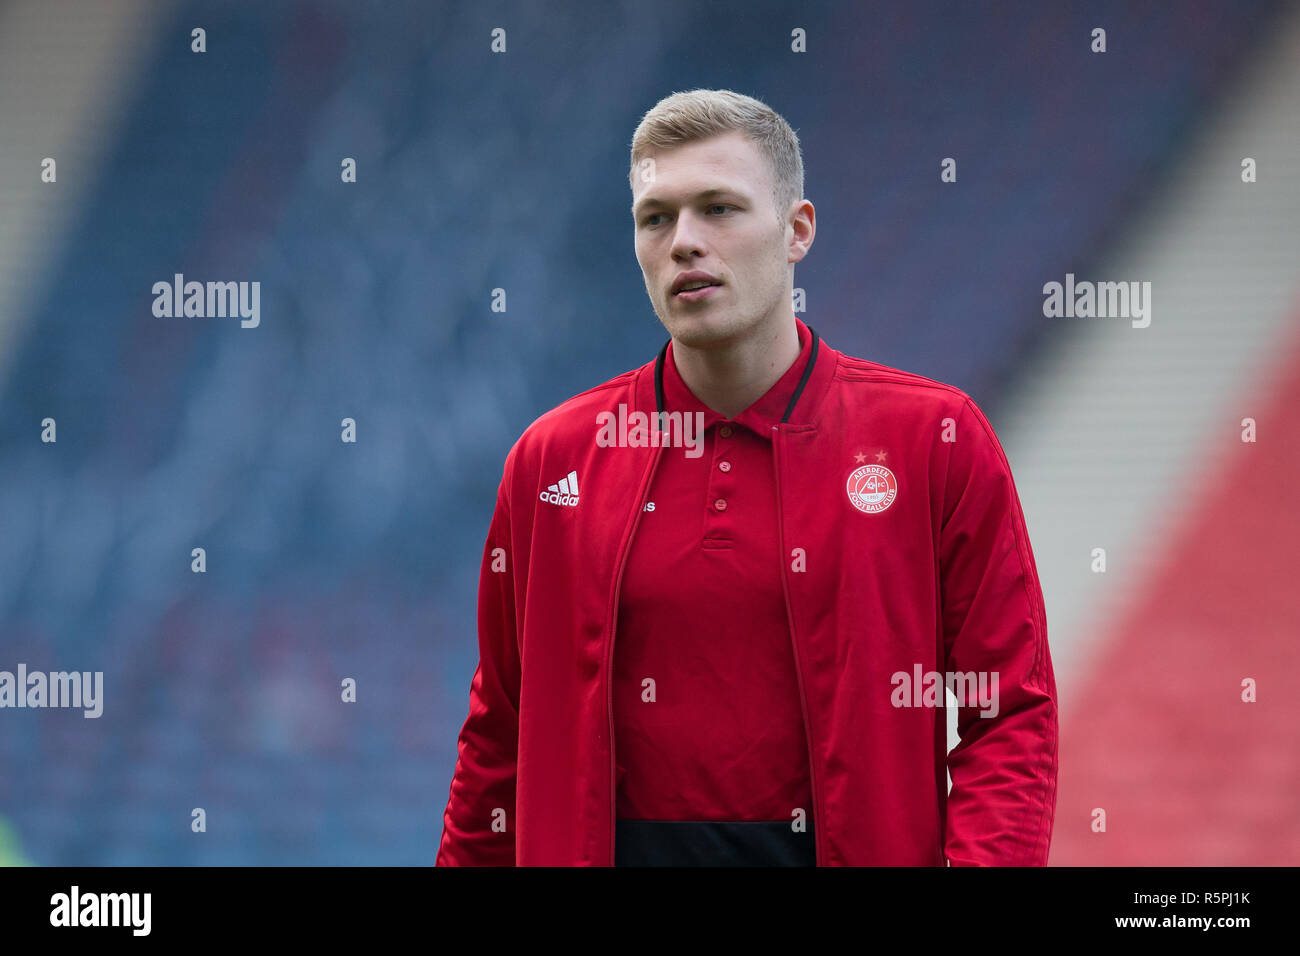 Hampden Park, Glasgow, UK. 2nd Dec, 2018. Scottish League Cup final, Celtic versus Aberdeen; Sam Cosgrove of Aberdeen on the pitch before the match Credit: Action Plus Sports/Alamy Live News - Stock Image